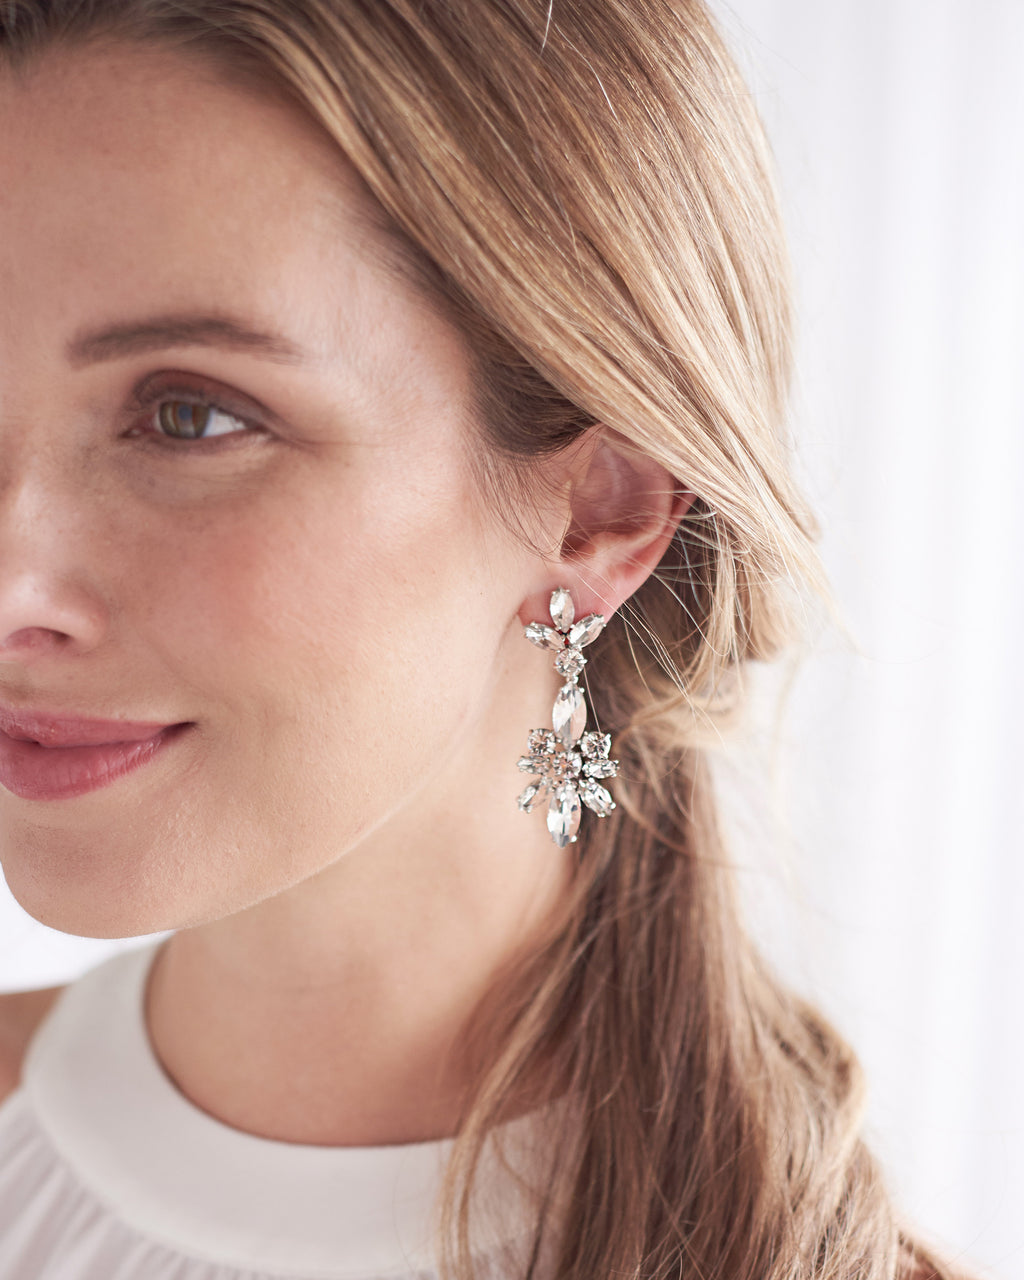 Wedding Day Statement Earrings